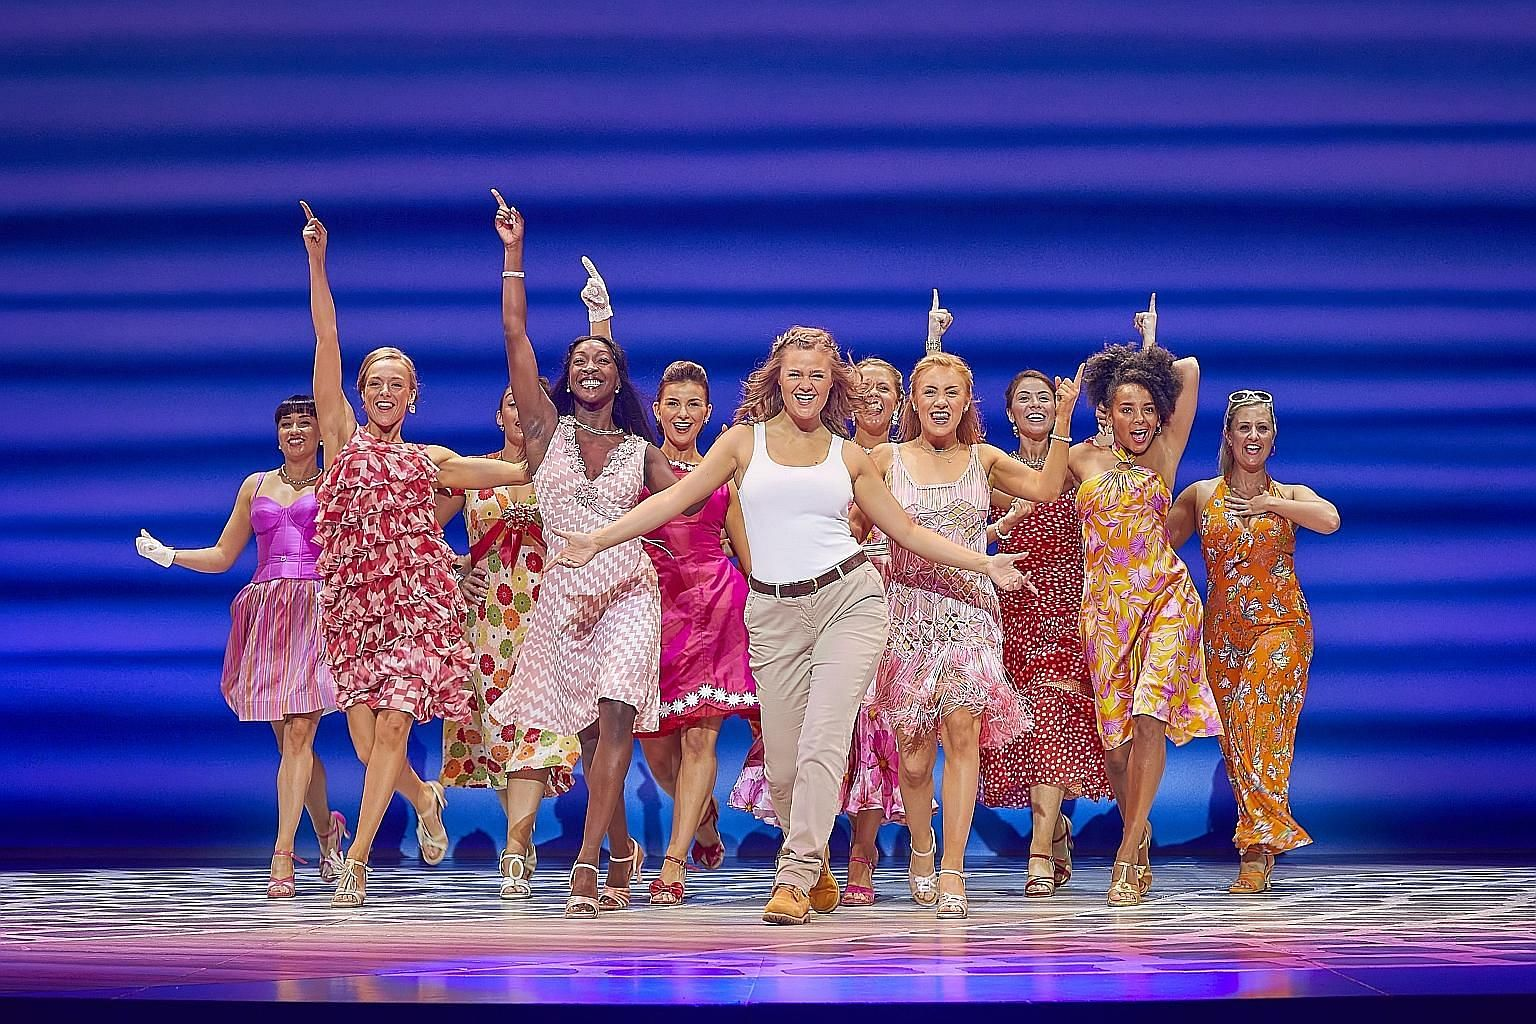 The musical Mamma Mia! returns for a run at the Sands Theatre from Nov 3 to 18.